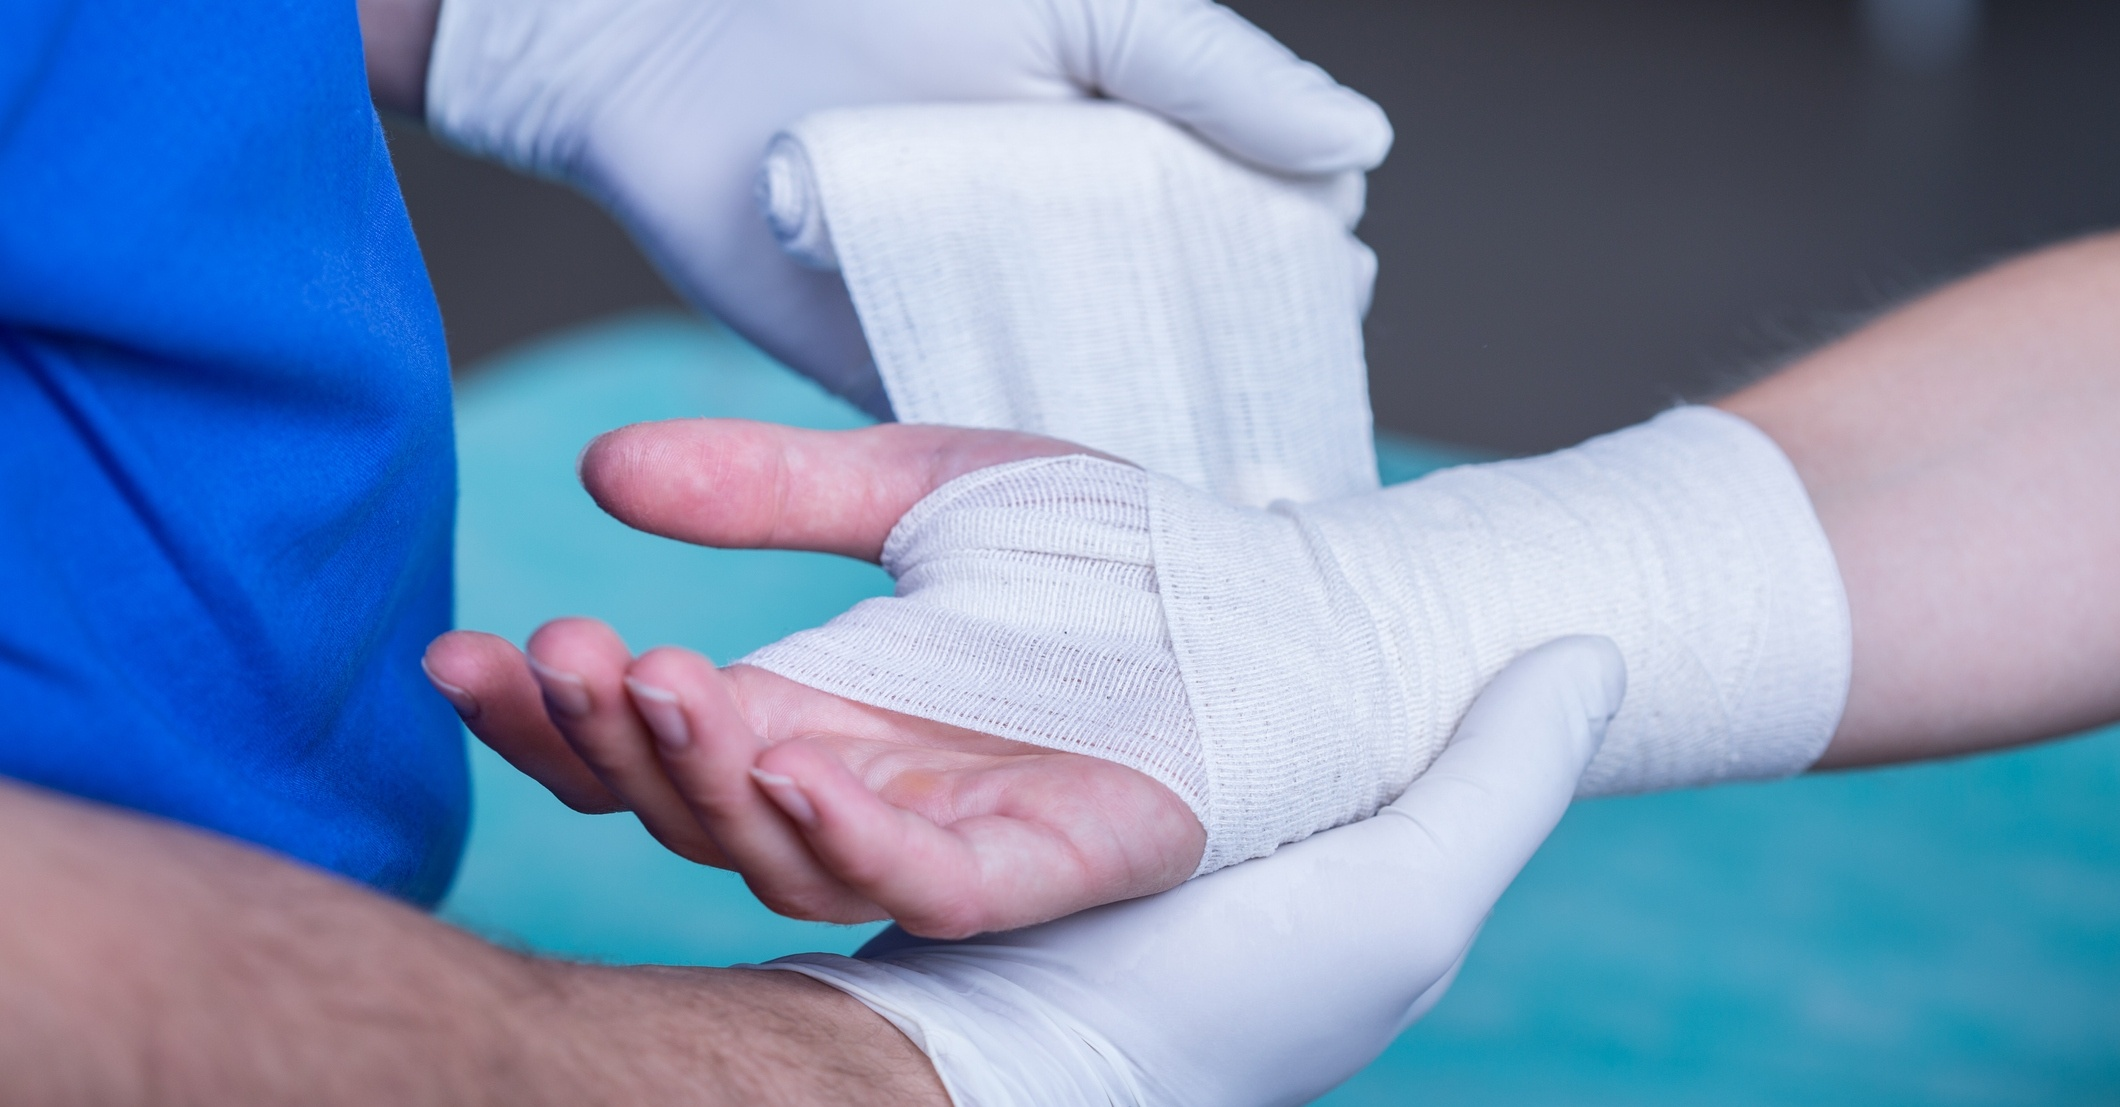 Wound care framework launched to tackle 'variation in services'